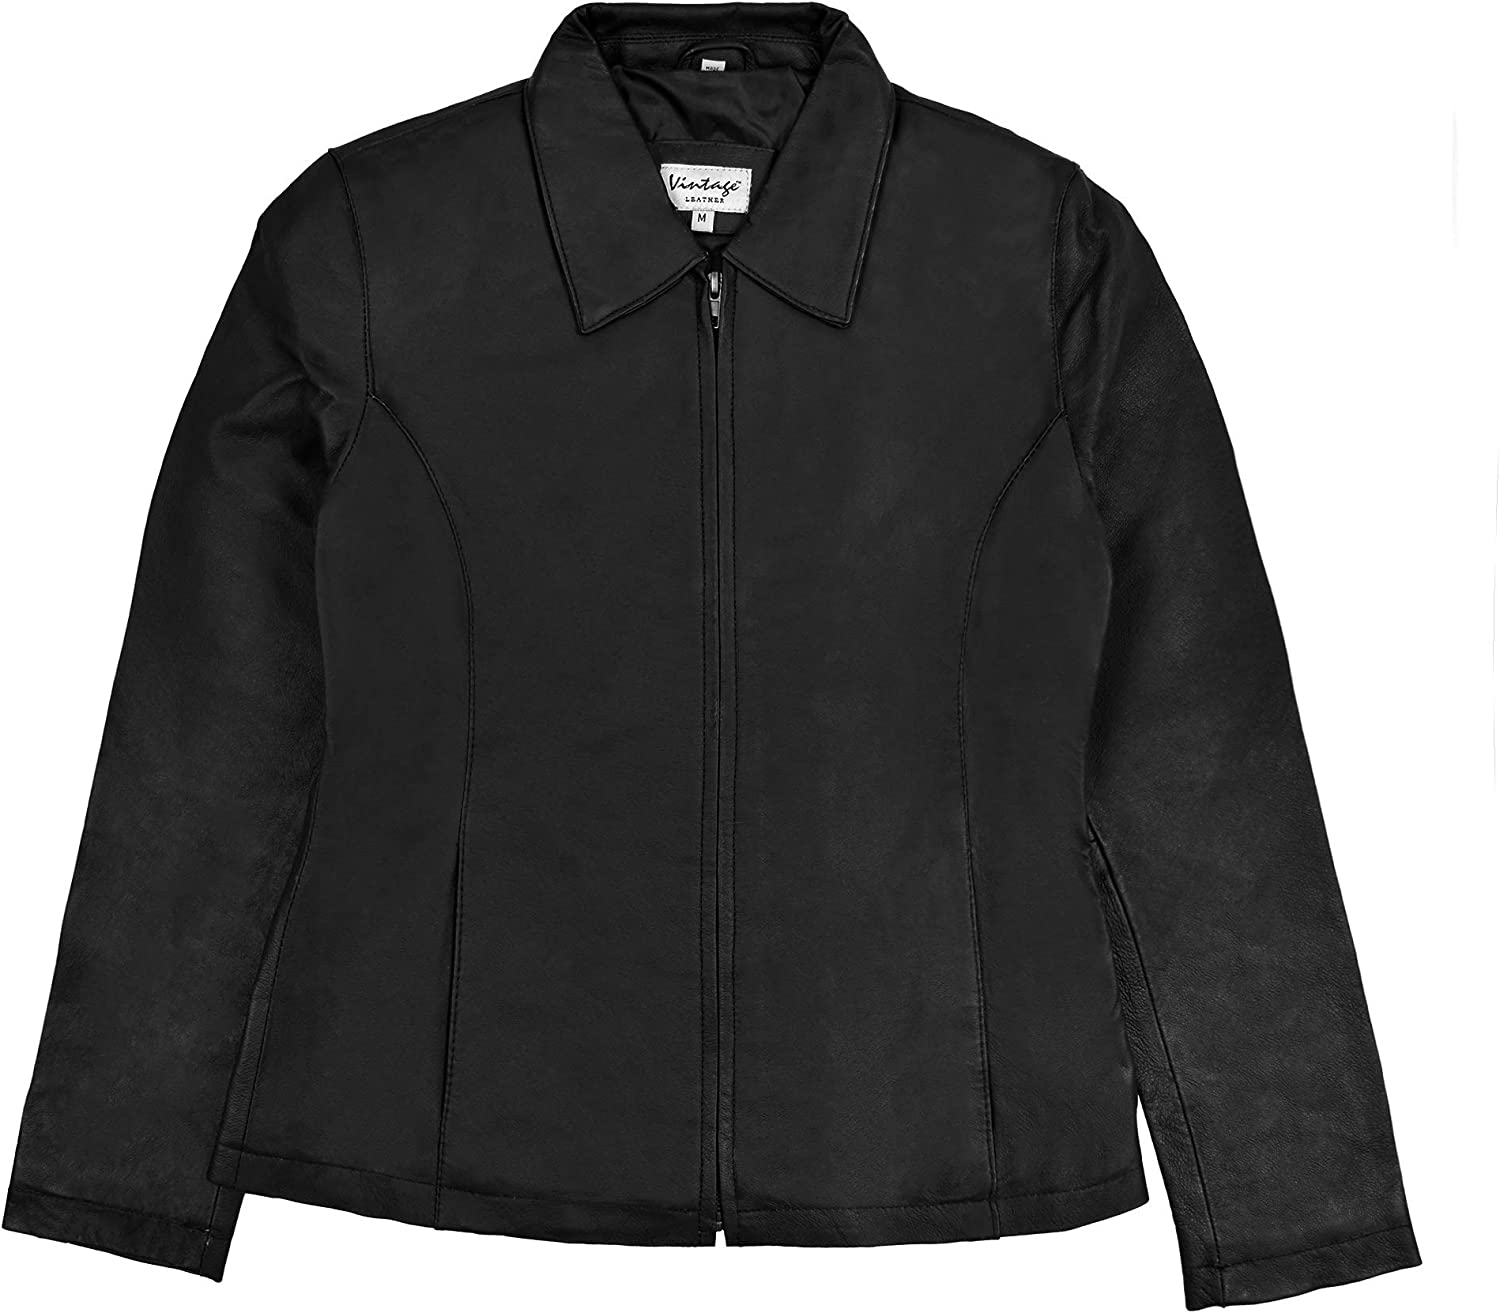 Victory Outfitters Ladies' Beauty products Genuine Gorgeous Leather Up Zip Jacket Lined